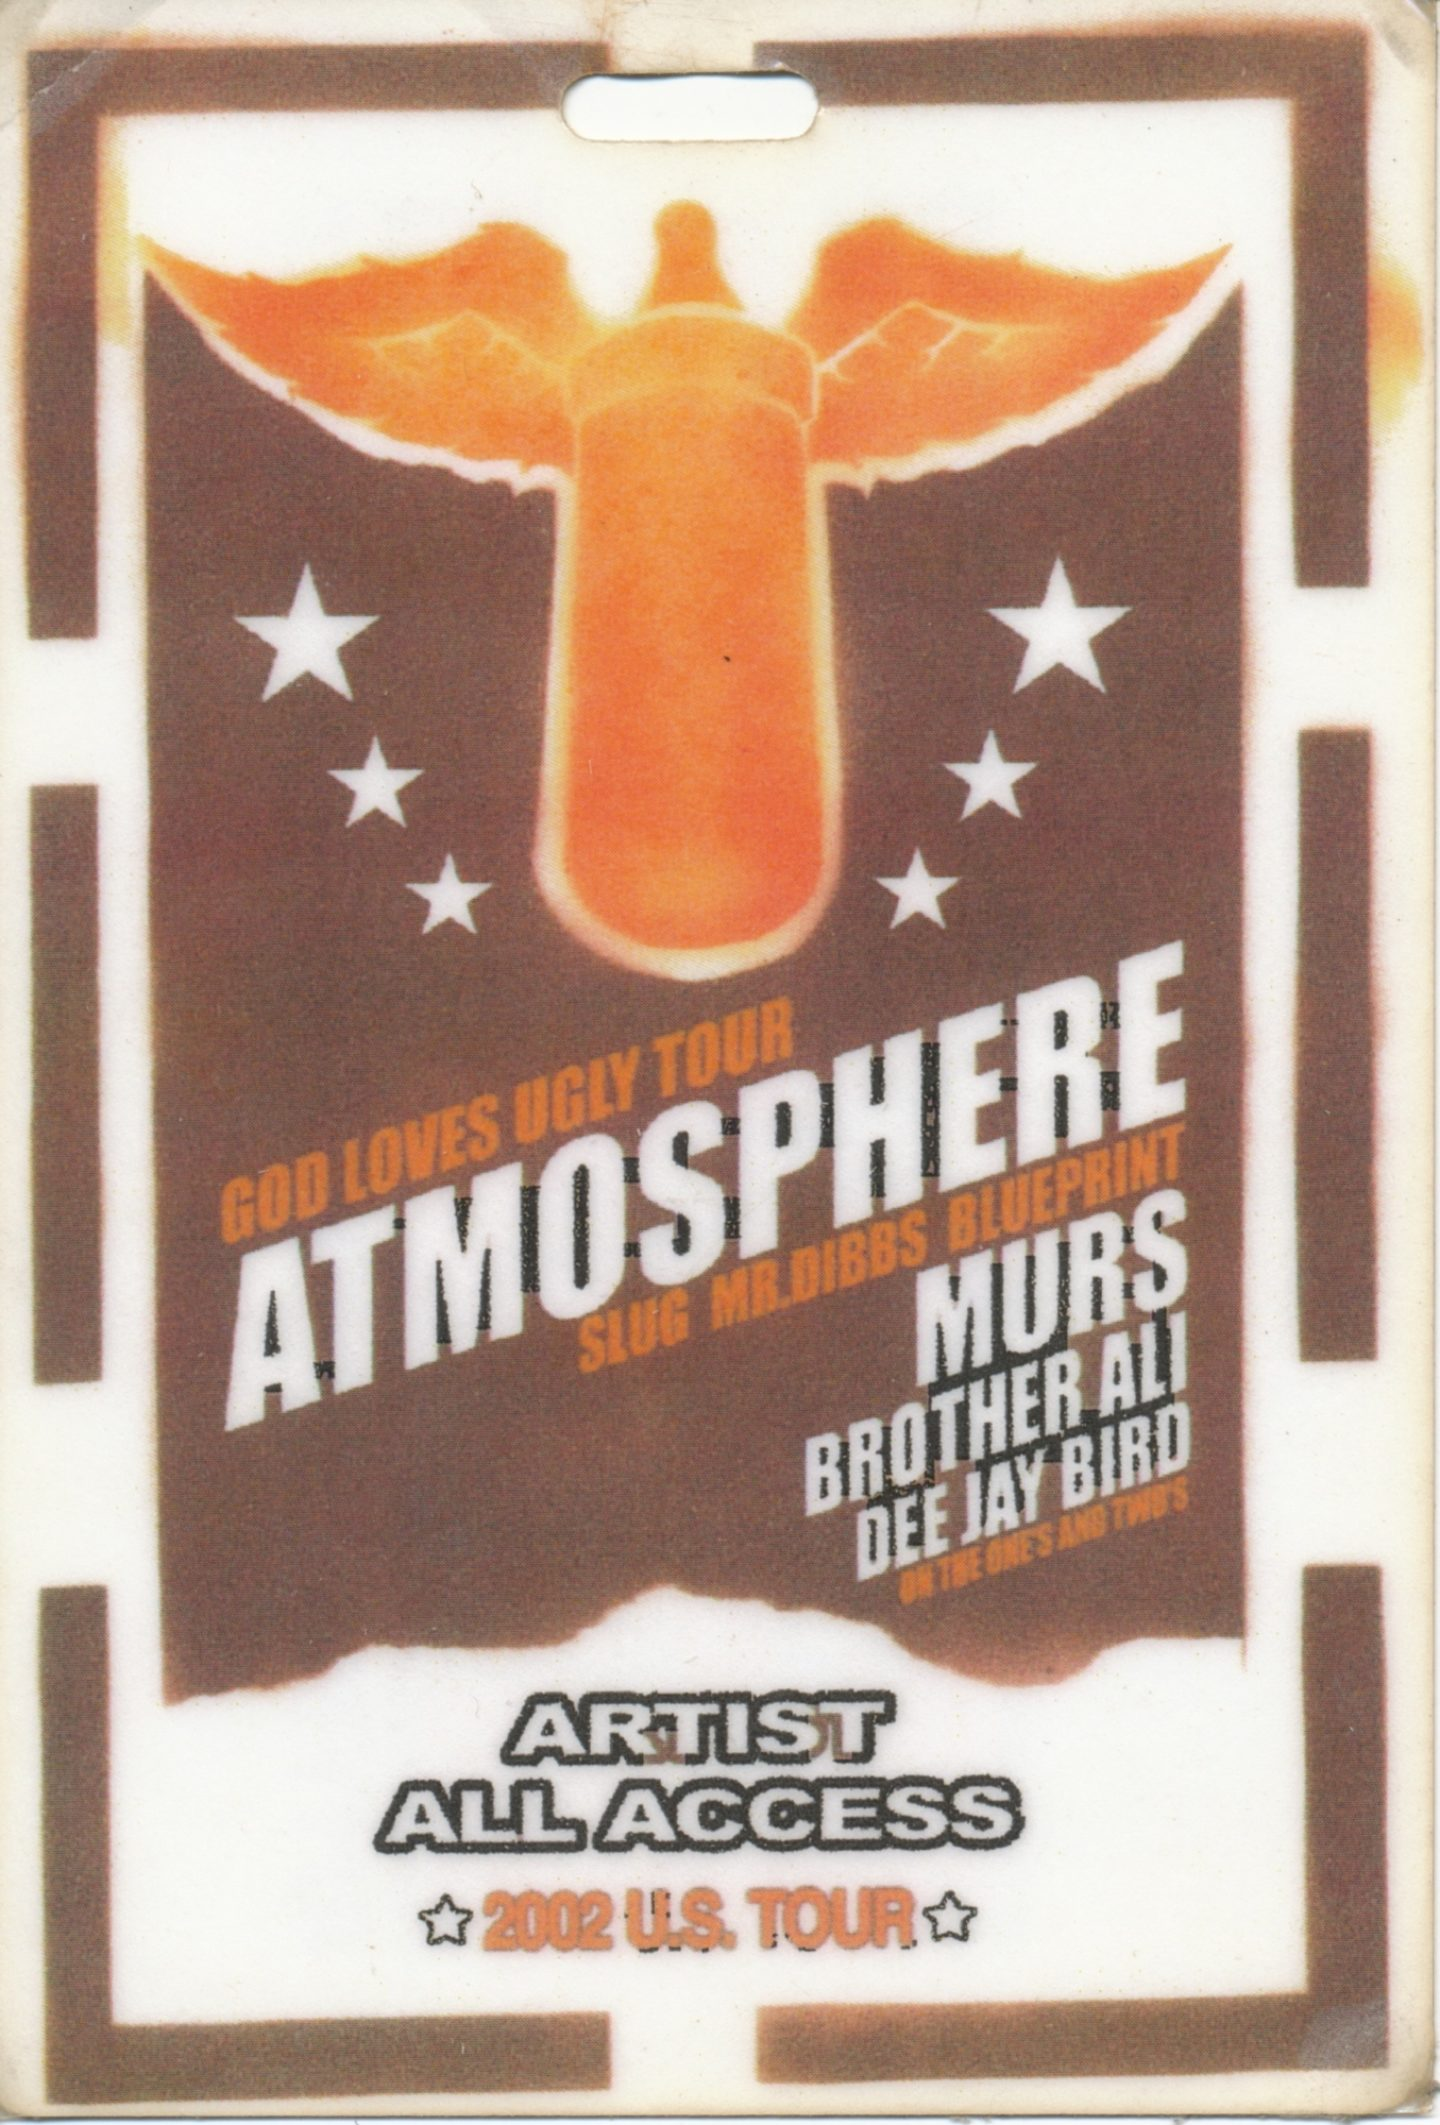 2002 September 16 God Loves Ugly Tour Atmoshpere Dibbs Slug Blueprint Murs Brother Ali Jay Bird U S To